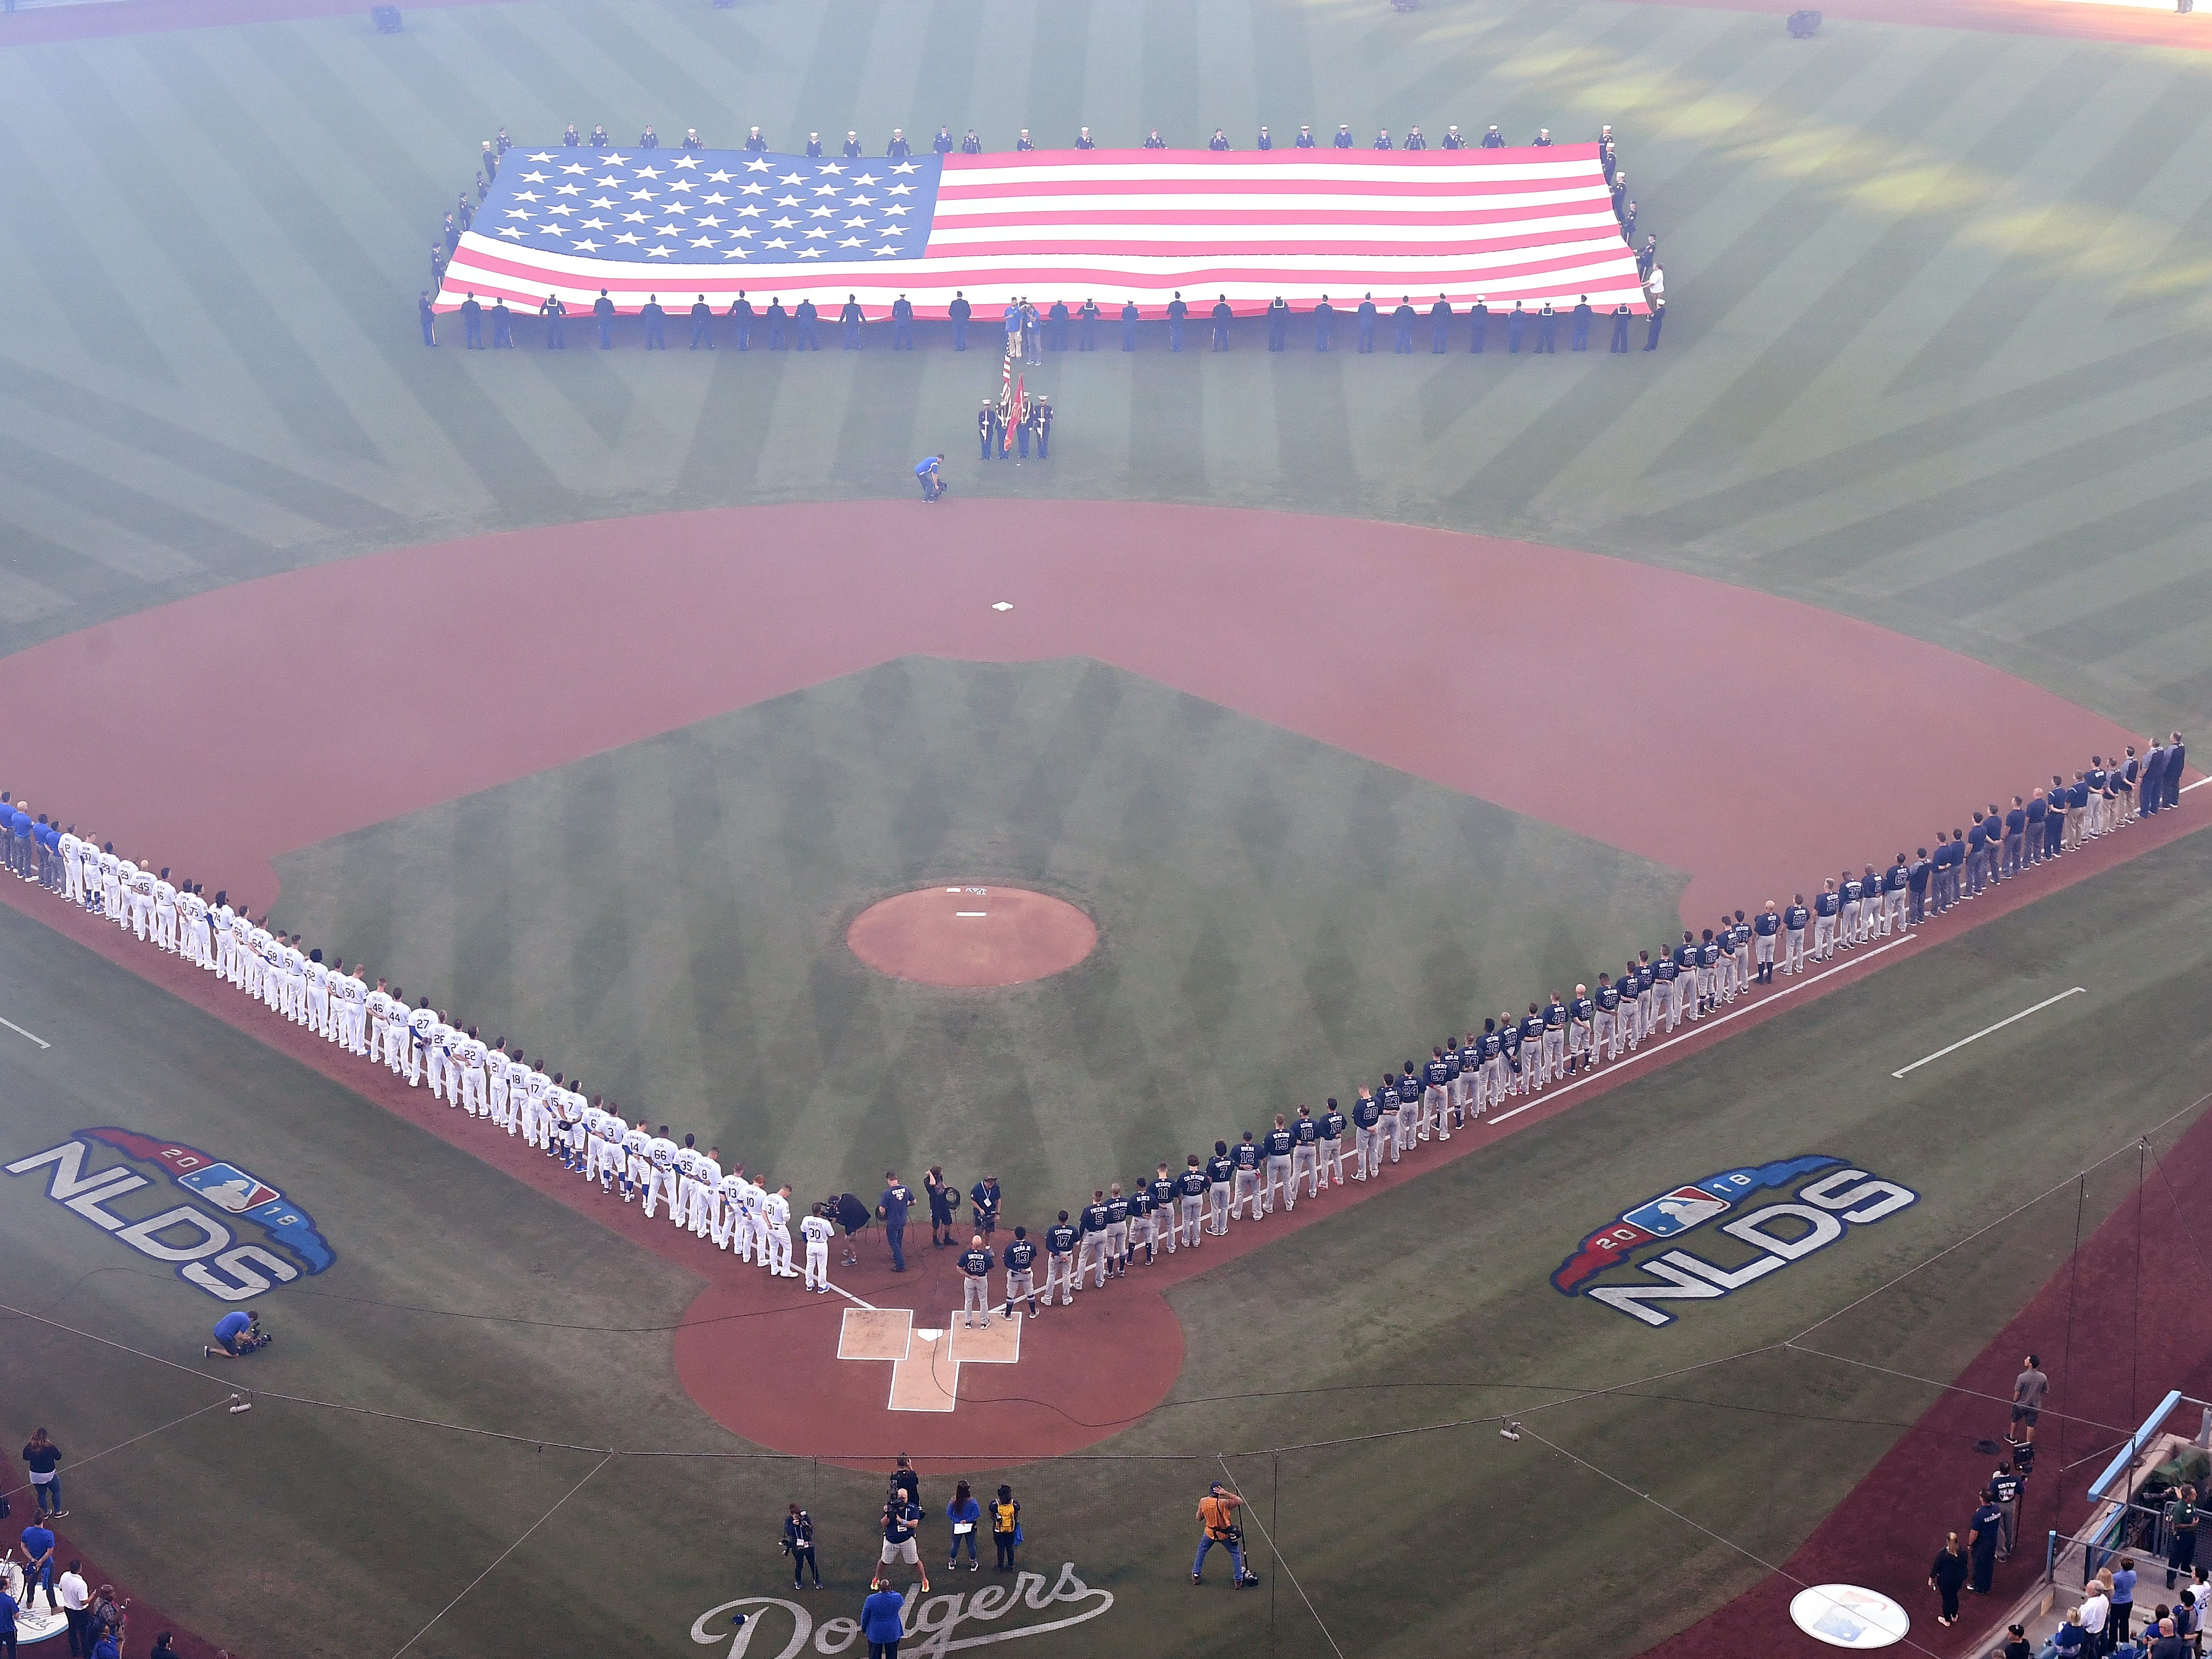 NLDS Game 1: The Dodgers and Braves stand for the national anthem before first pitch at Dodger Stadium.